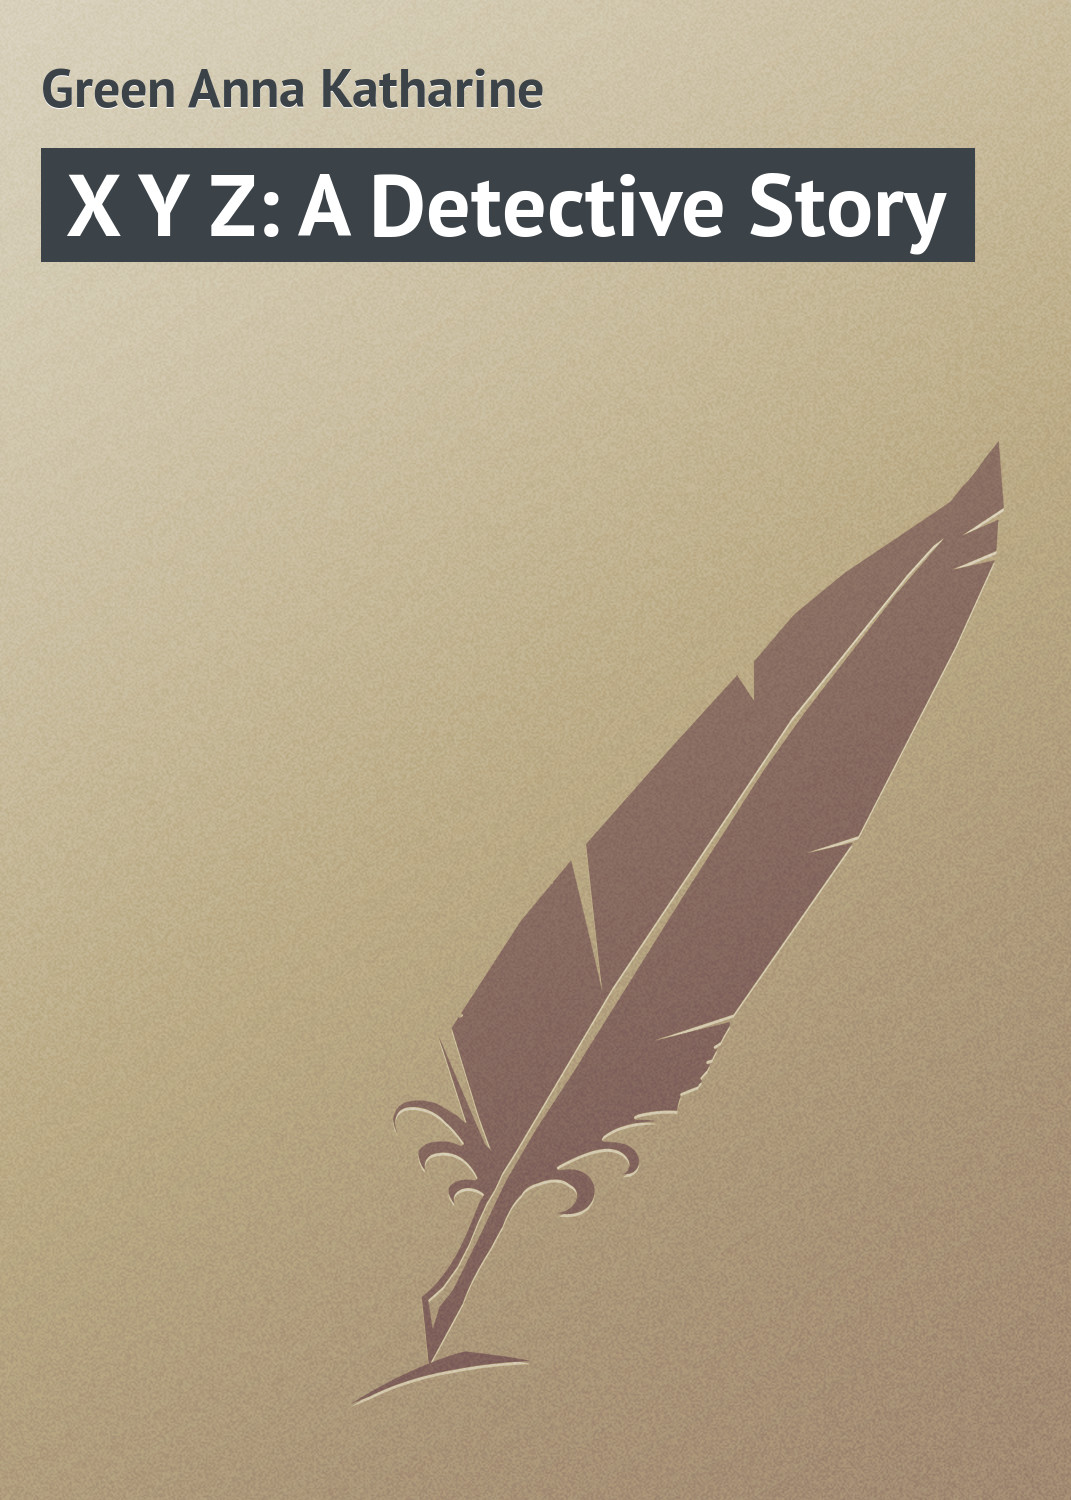 Green Anna Katharine X Y Z: A Detective Story линейные направляющие mux 9 mgn9 l 400 mgn9c mgn9h cnc x y z mgn9c h